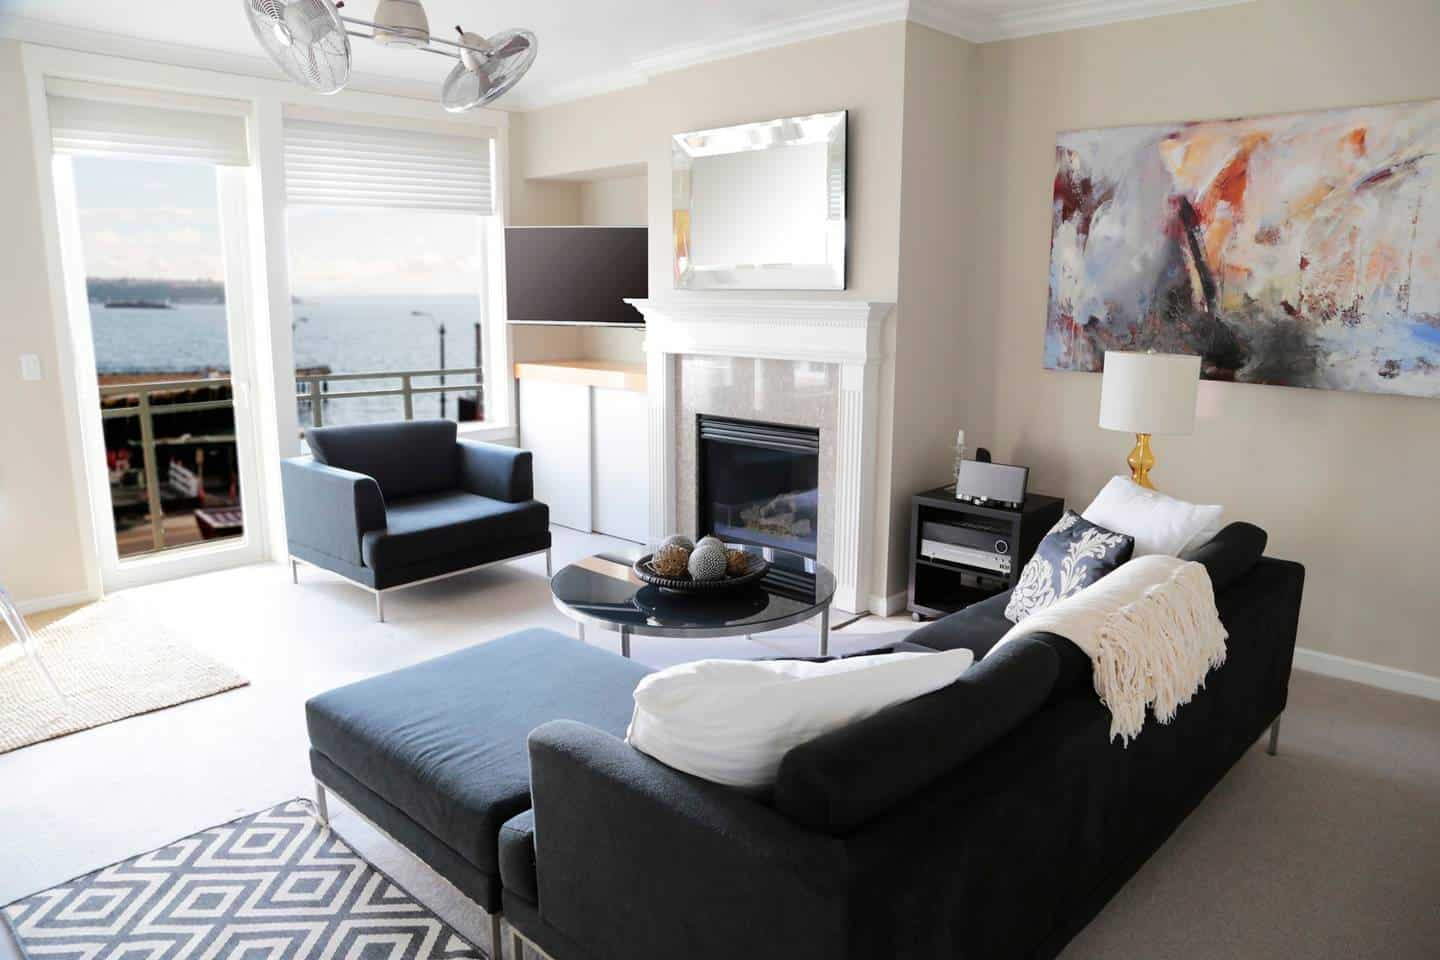 Our pick for a budget Airbnb Seattle Waterfront stay